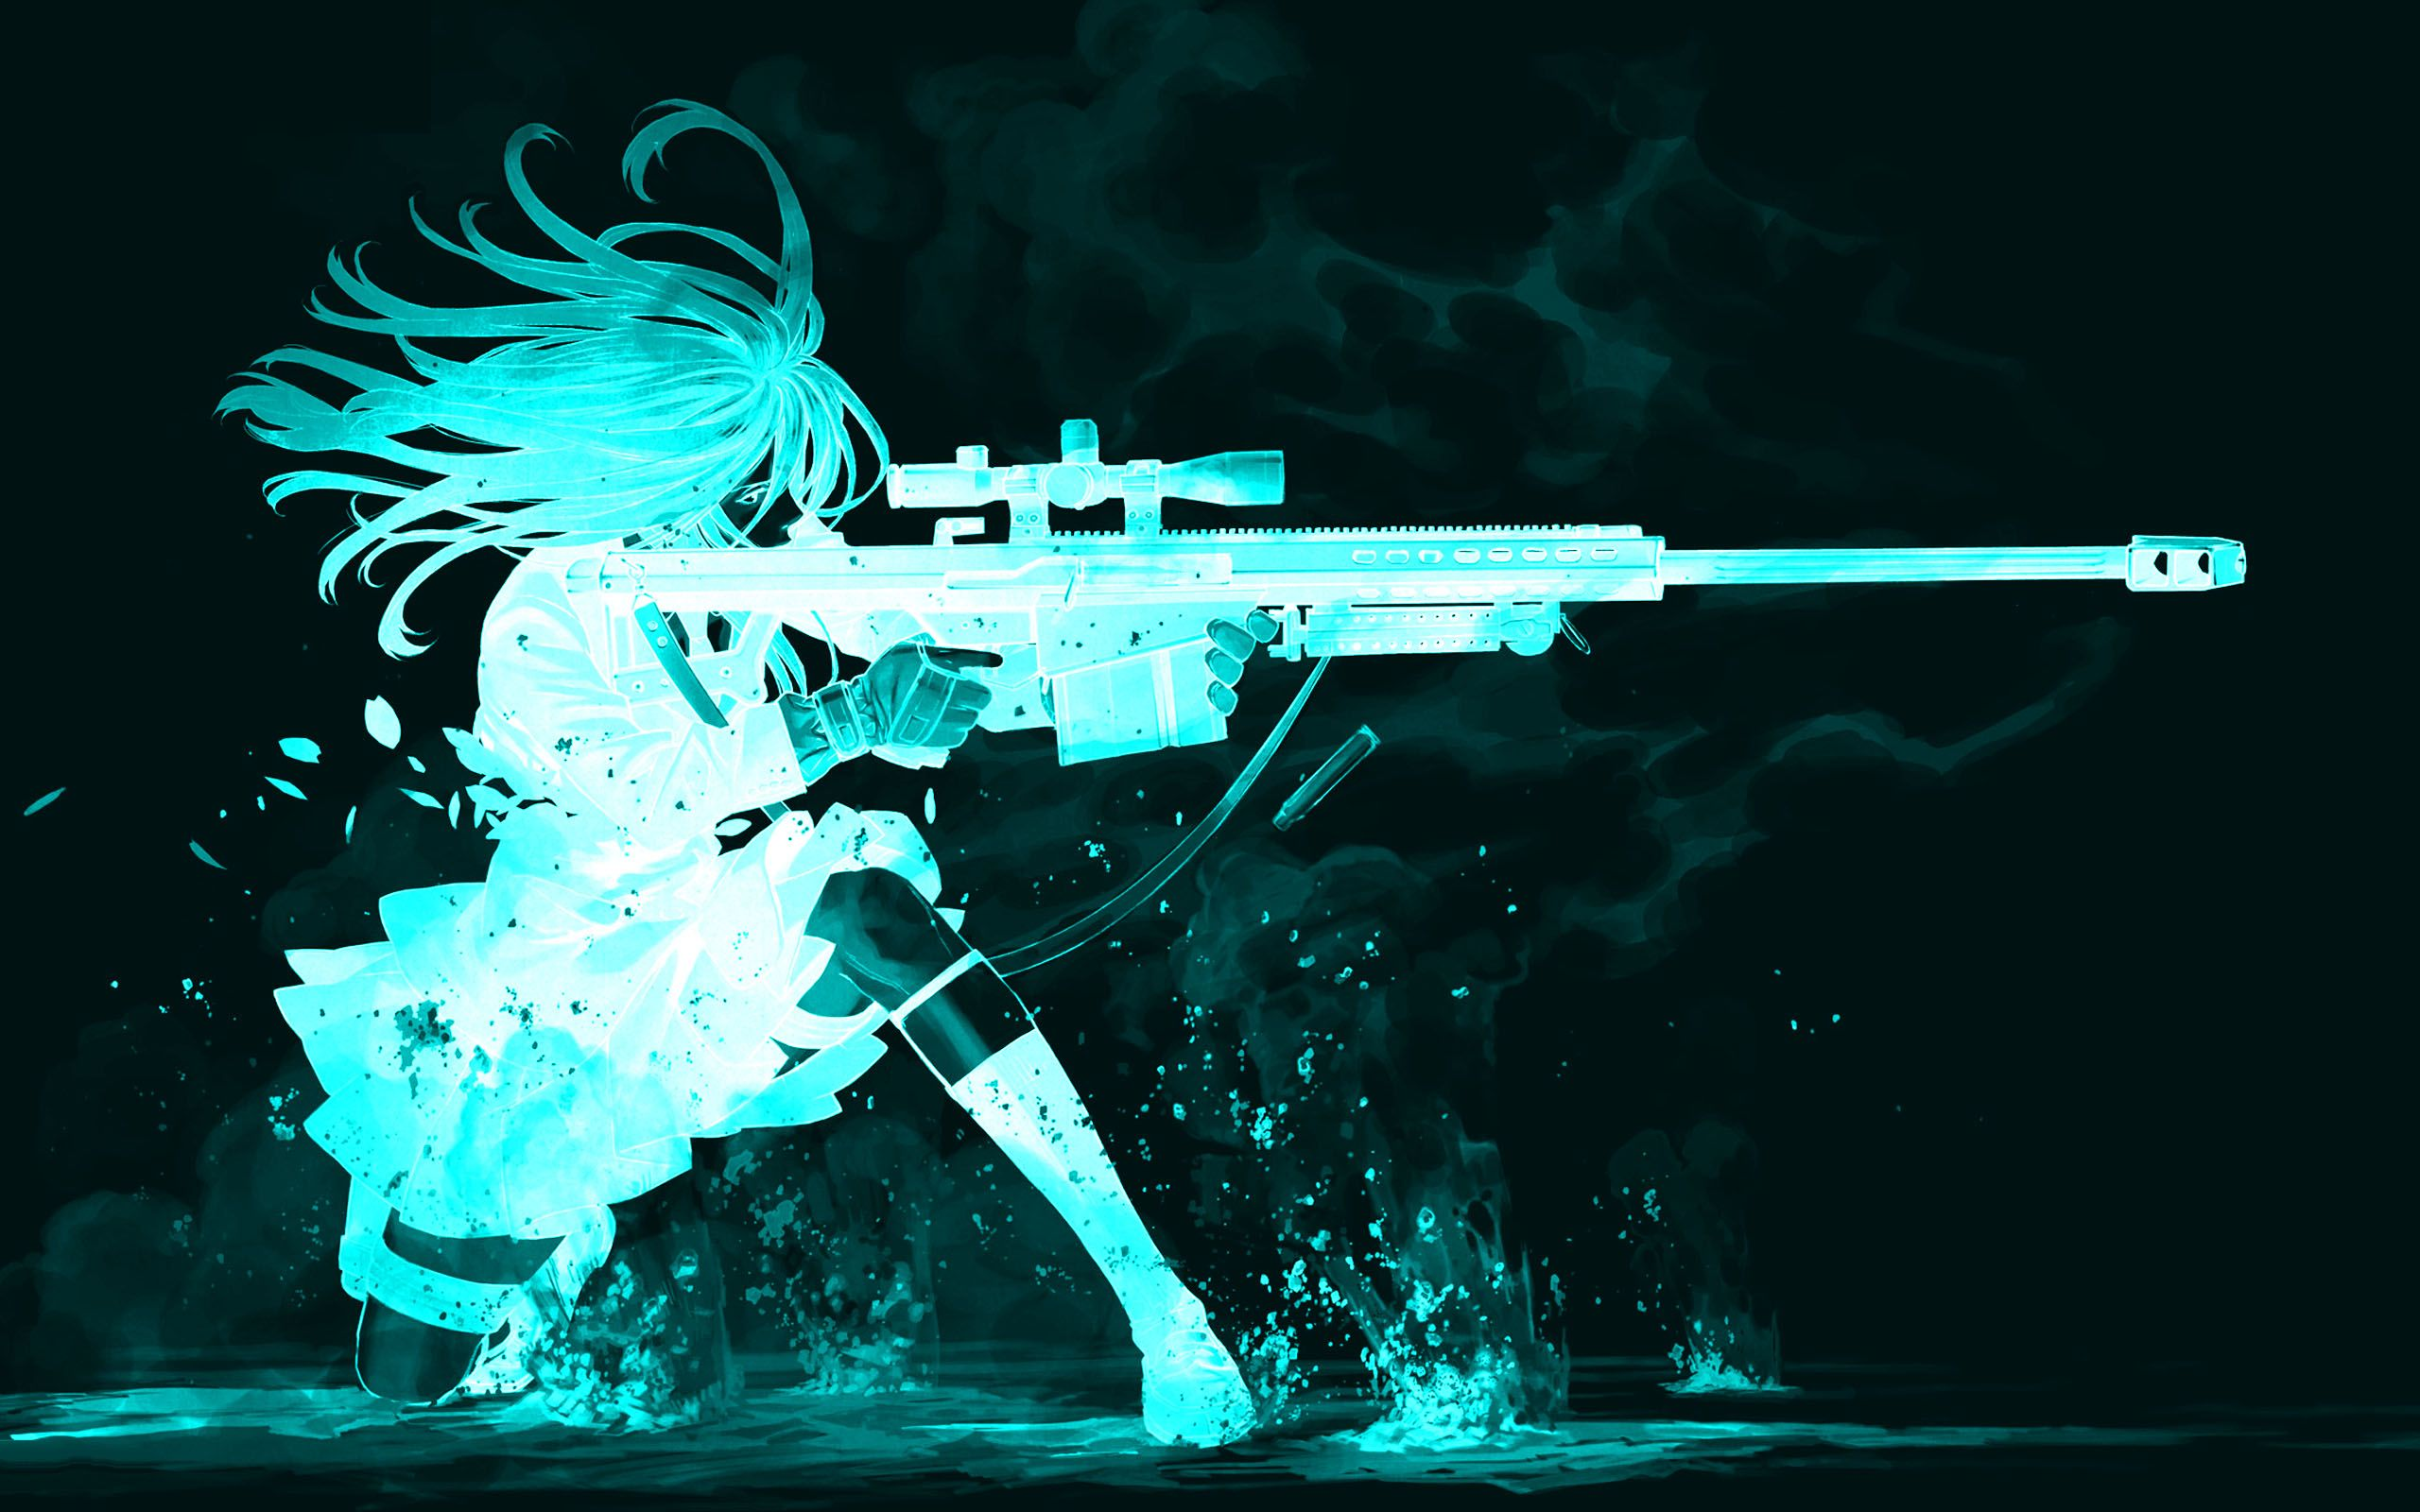 Cool Anime Desktop Backgrounds Posted By Zoey Cunningham